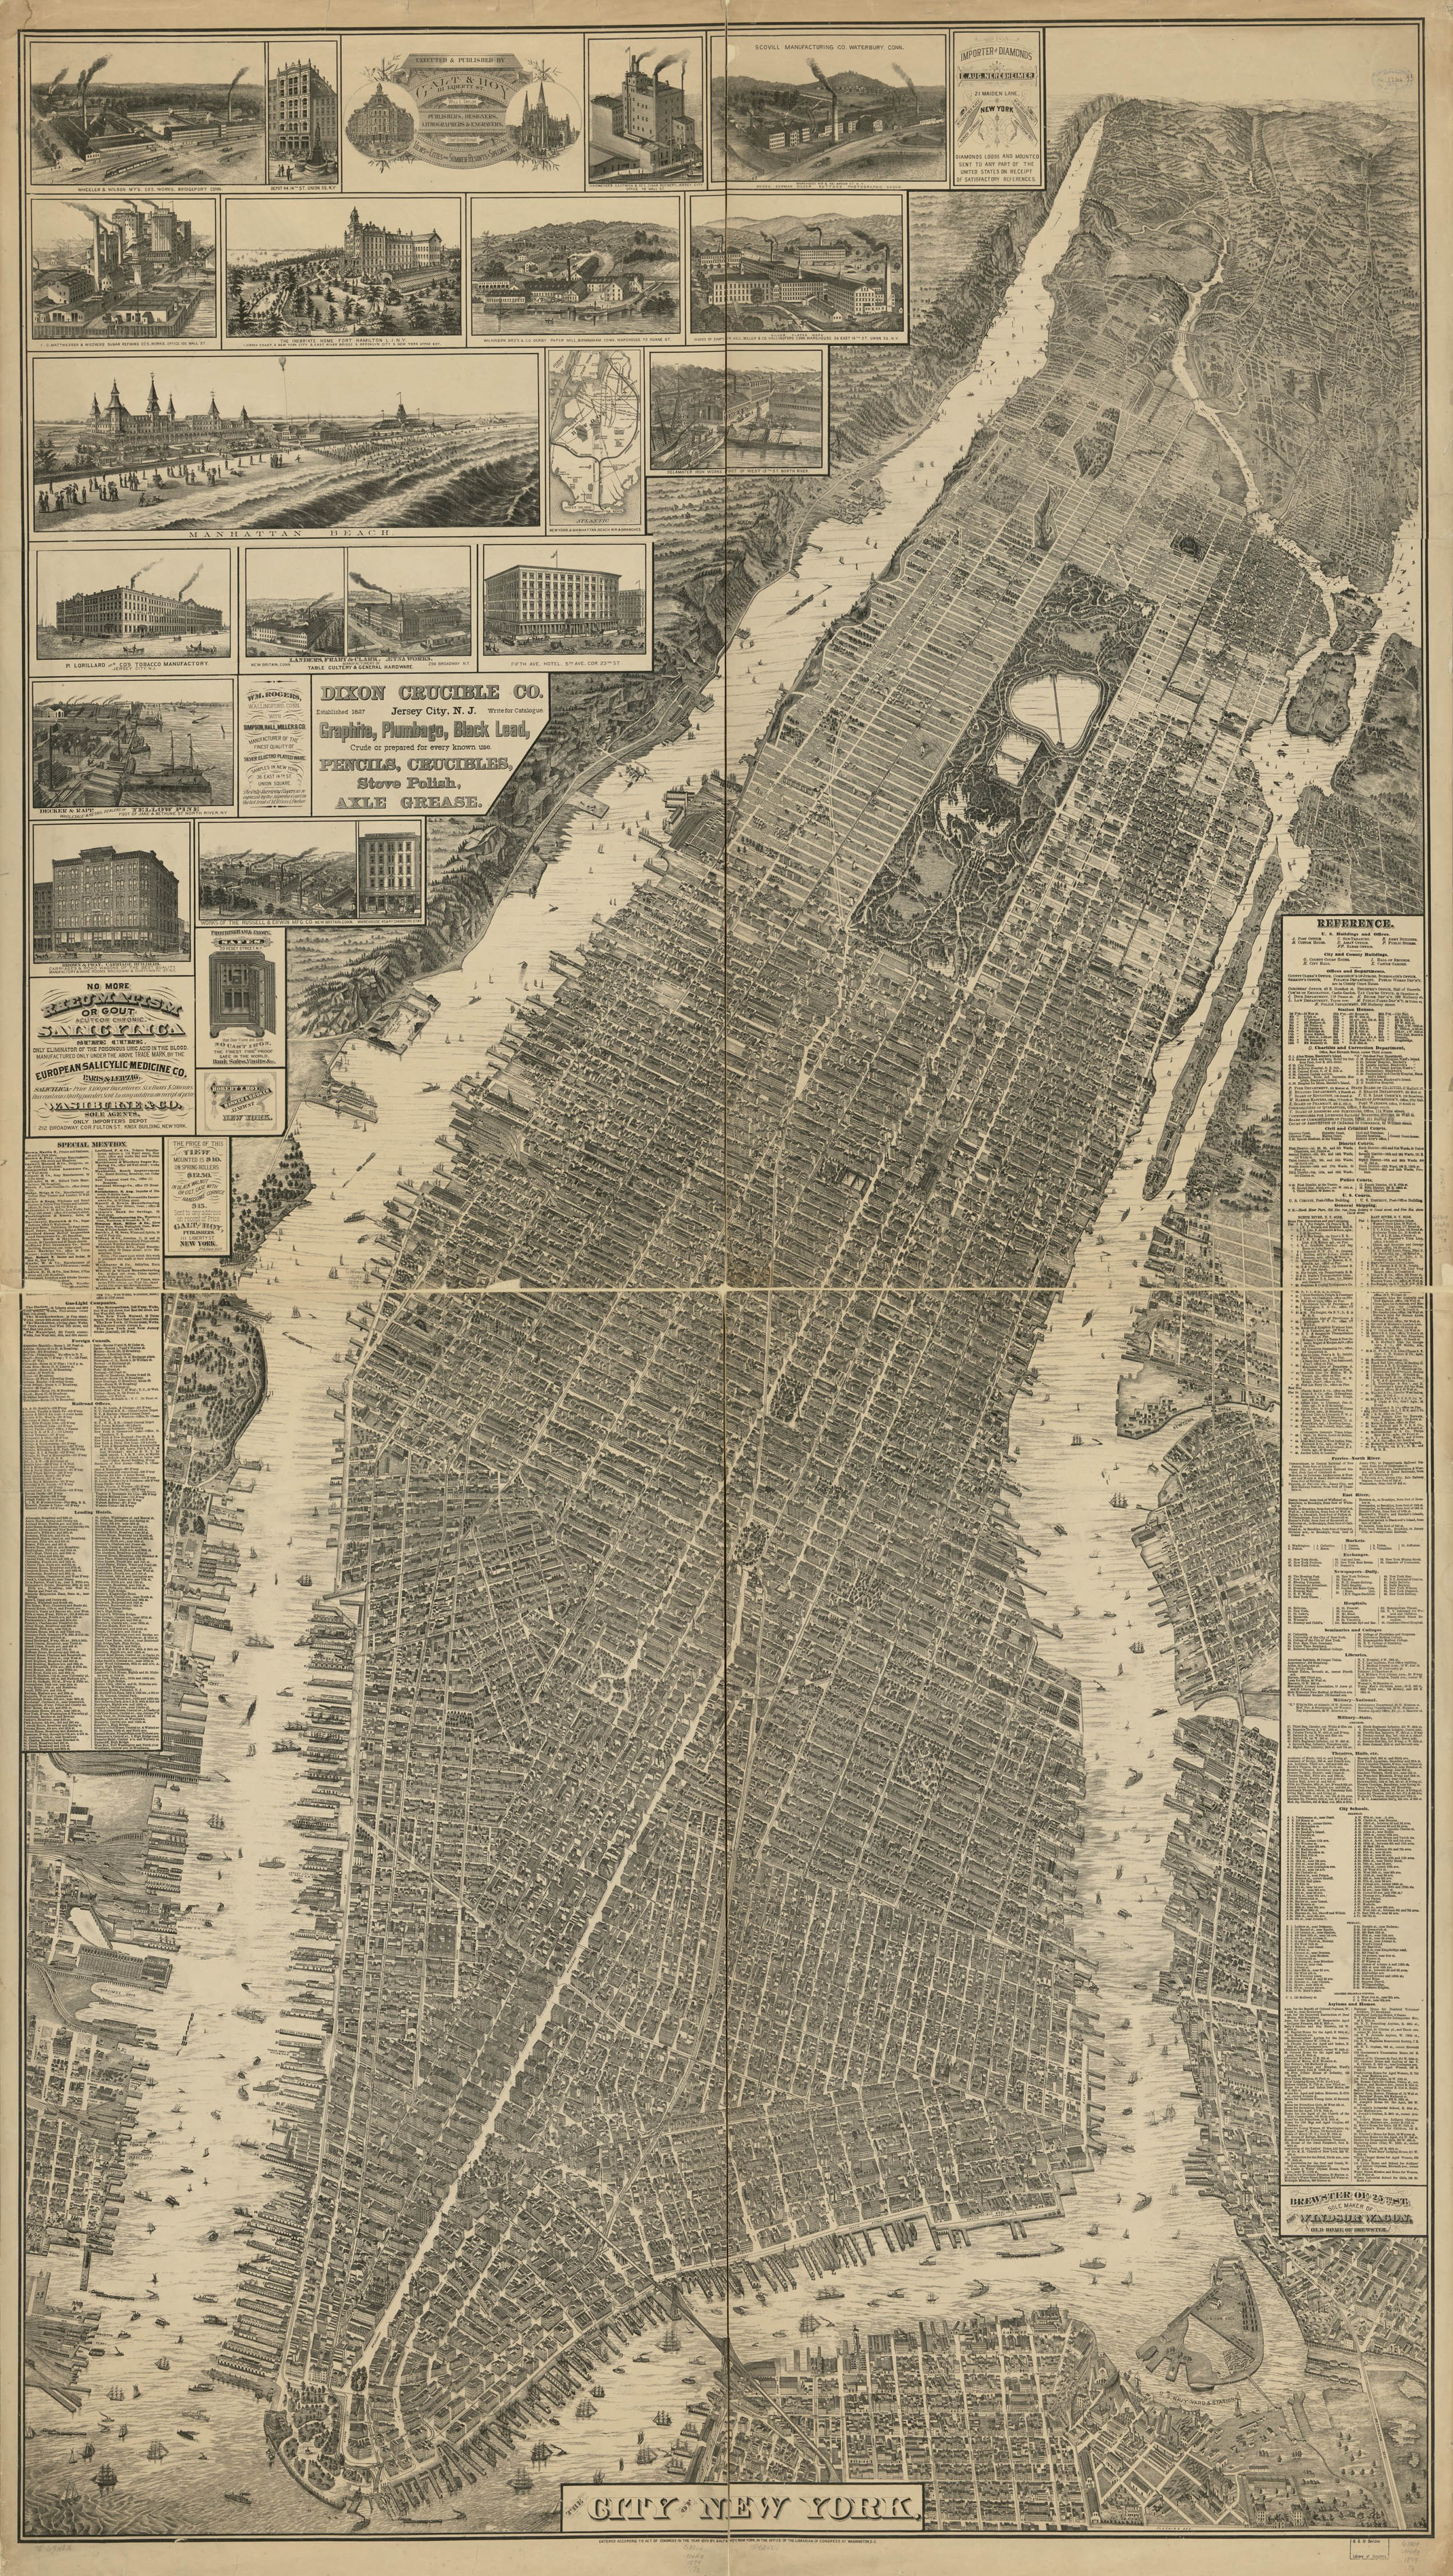 Map Of Old New York.Check Out This Incredibly Detailed Vintage Map Of The City Of New